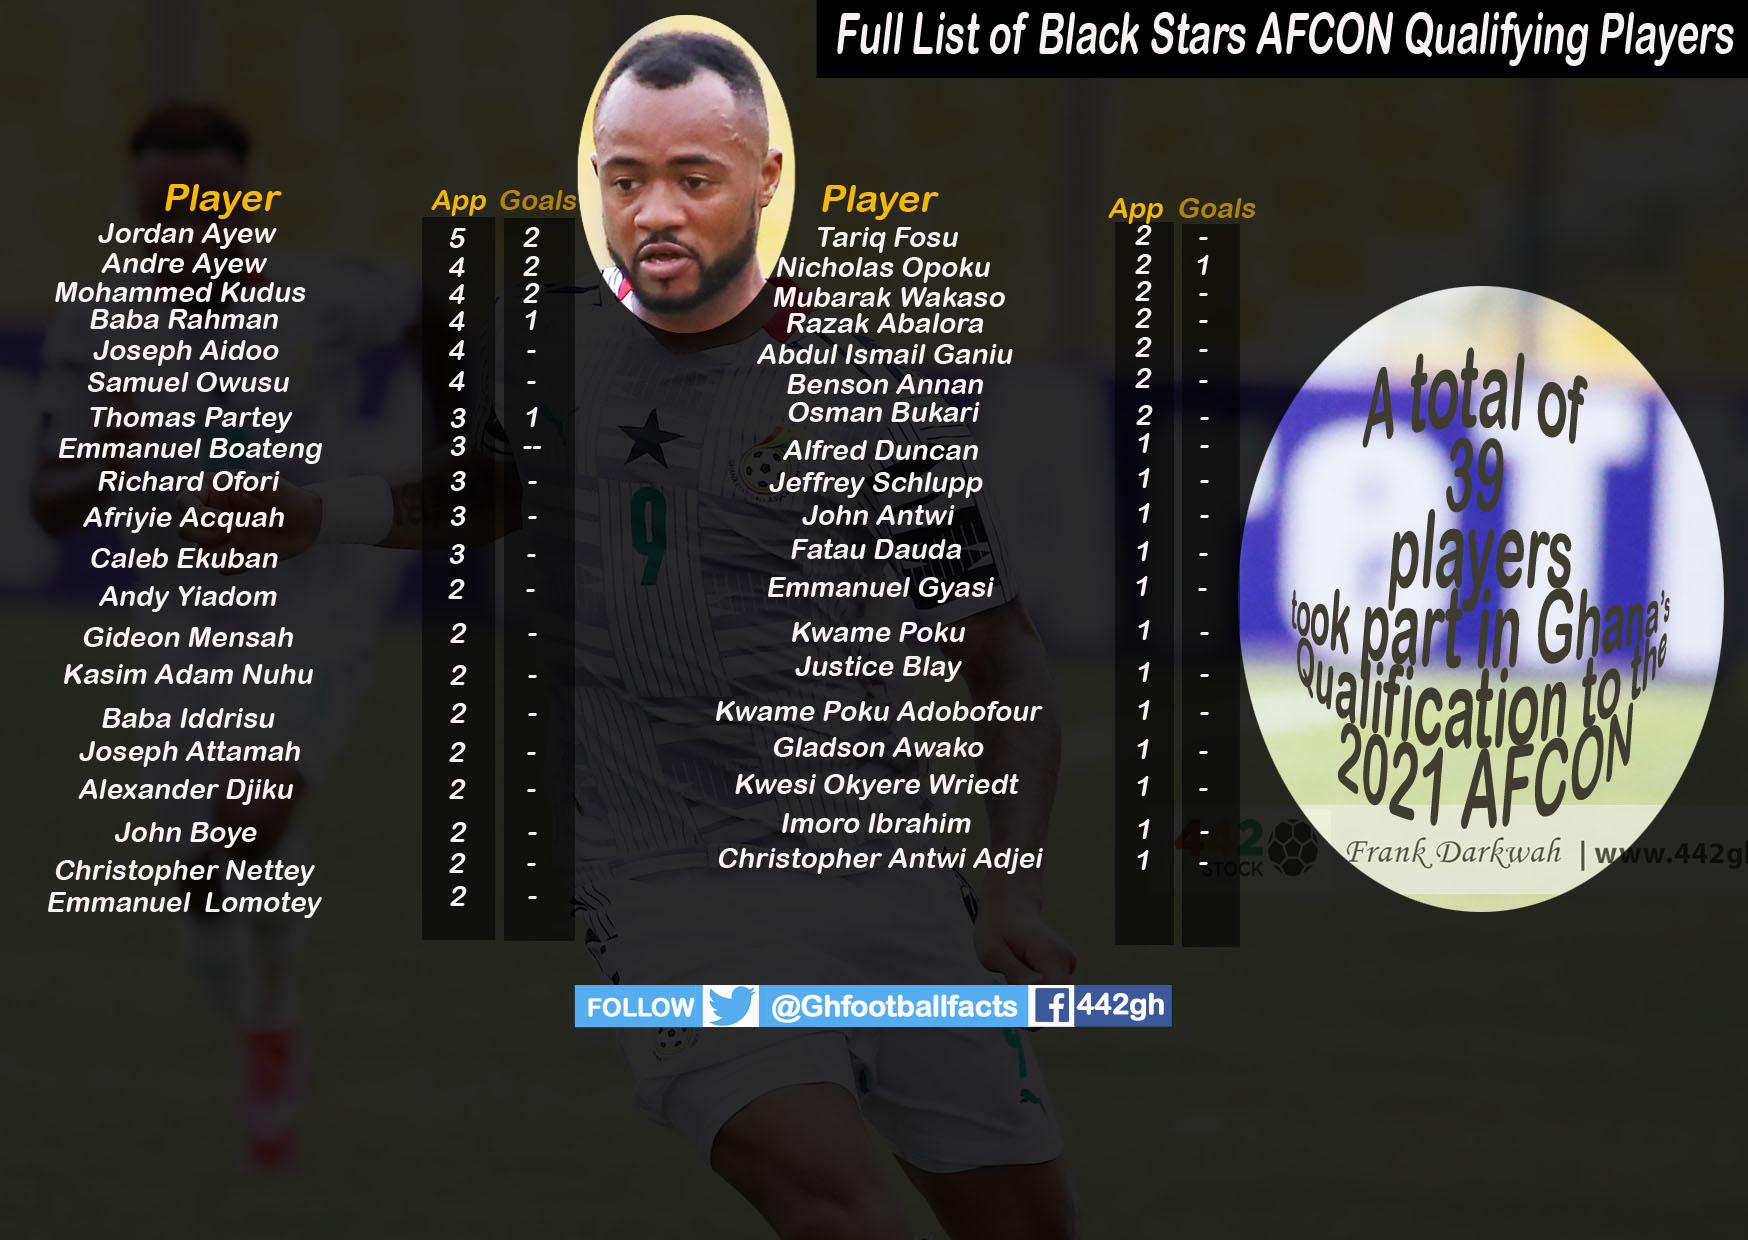 Black Stars AFCON copy - Stat Attack - Full list of all 39 players involved in Ghana's AFCON qualification, and some more.....